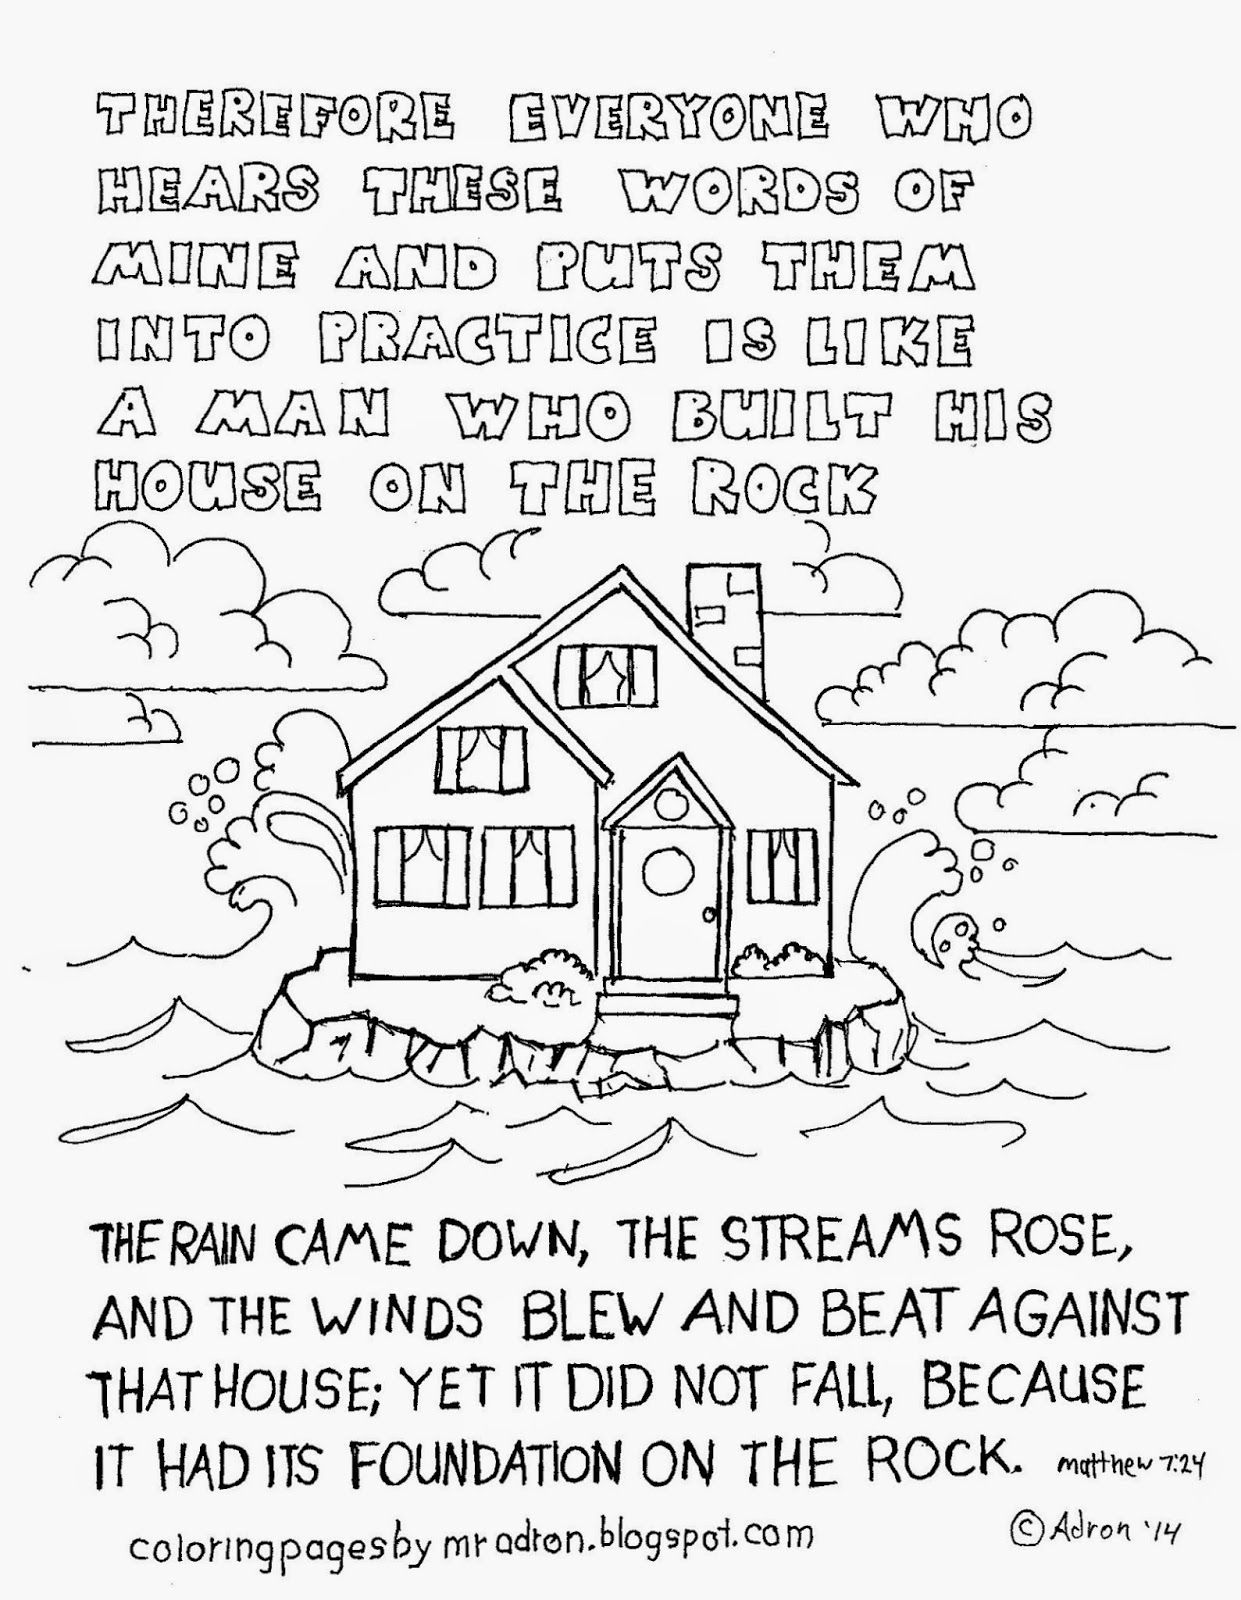 Coloring Pages For Kids By Mr Adron Matthew 724 The Man Who Built His House On R